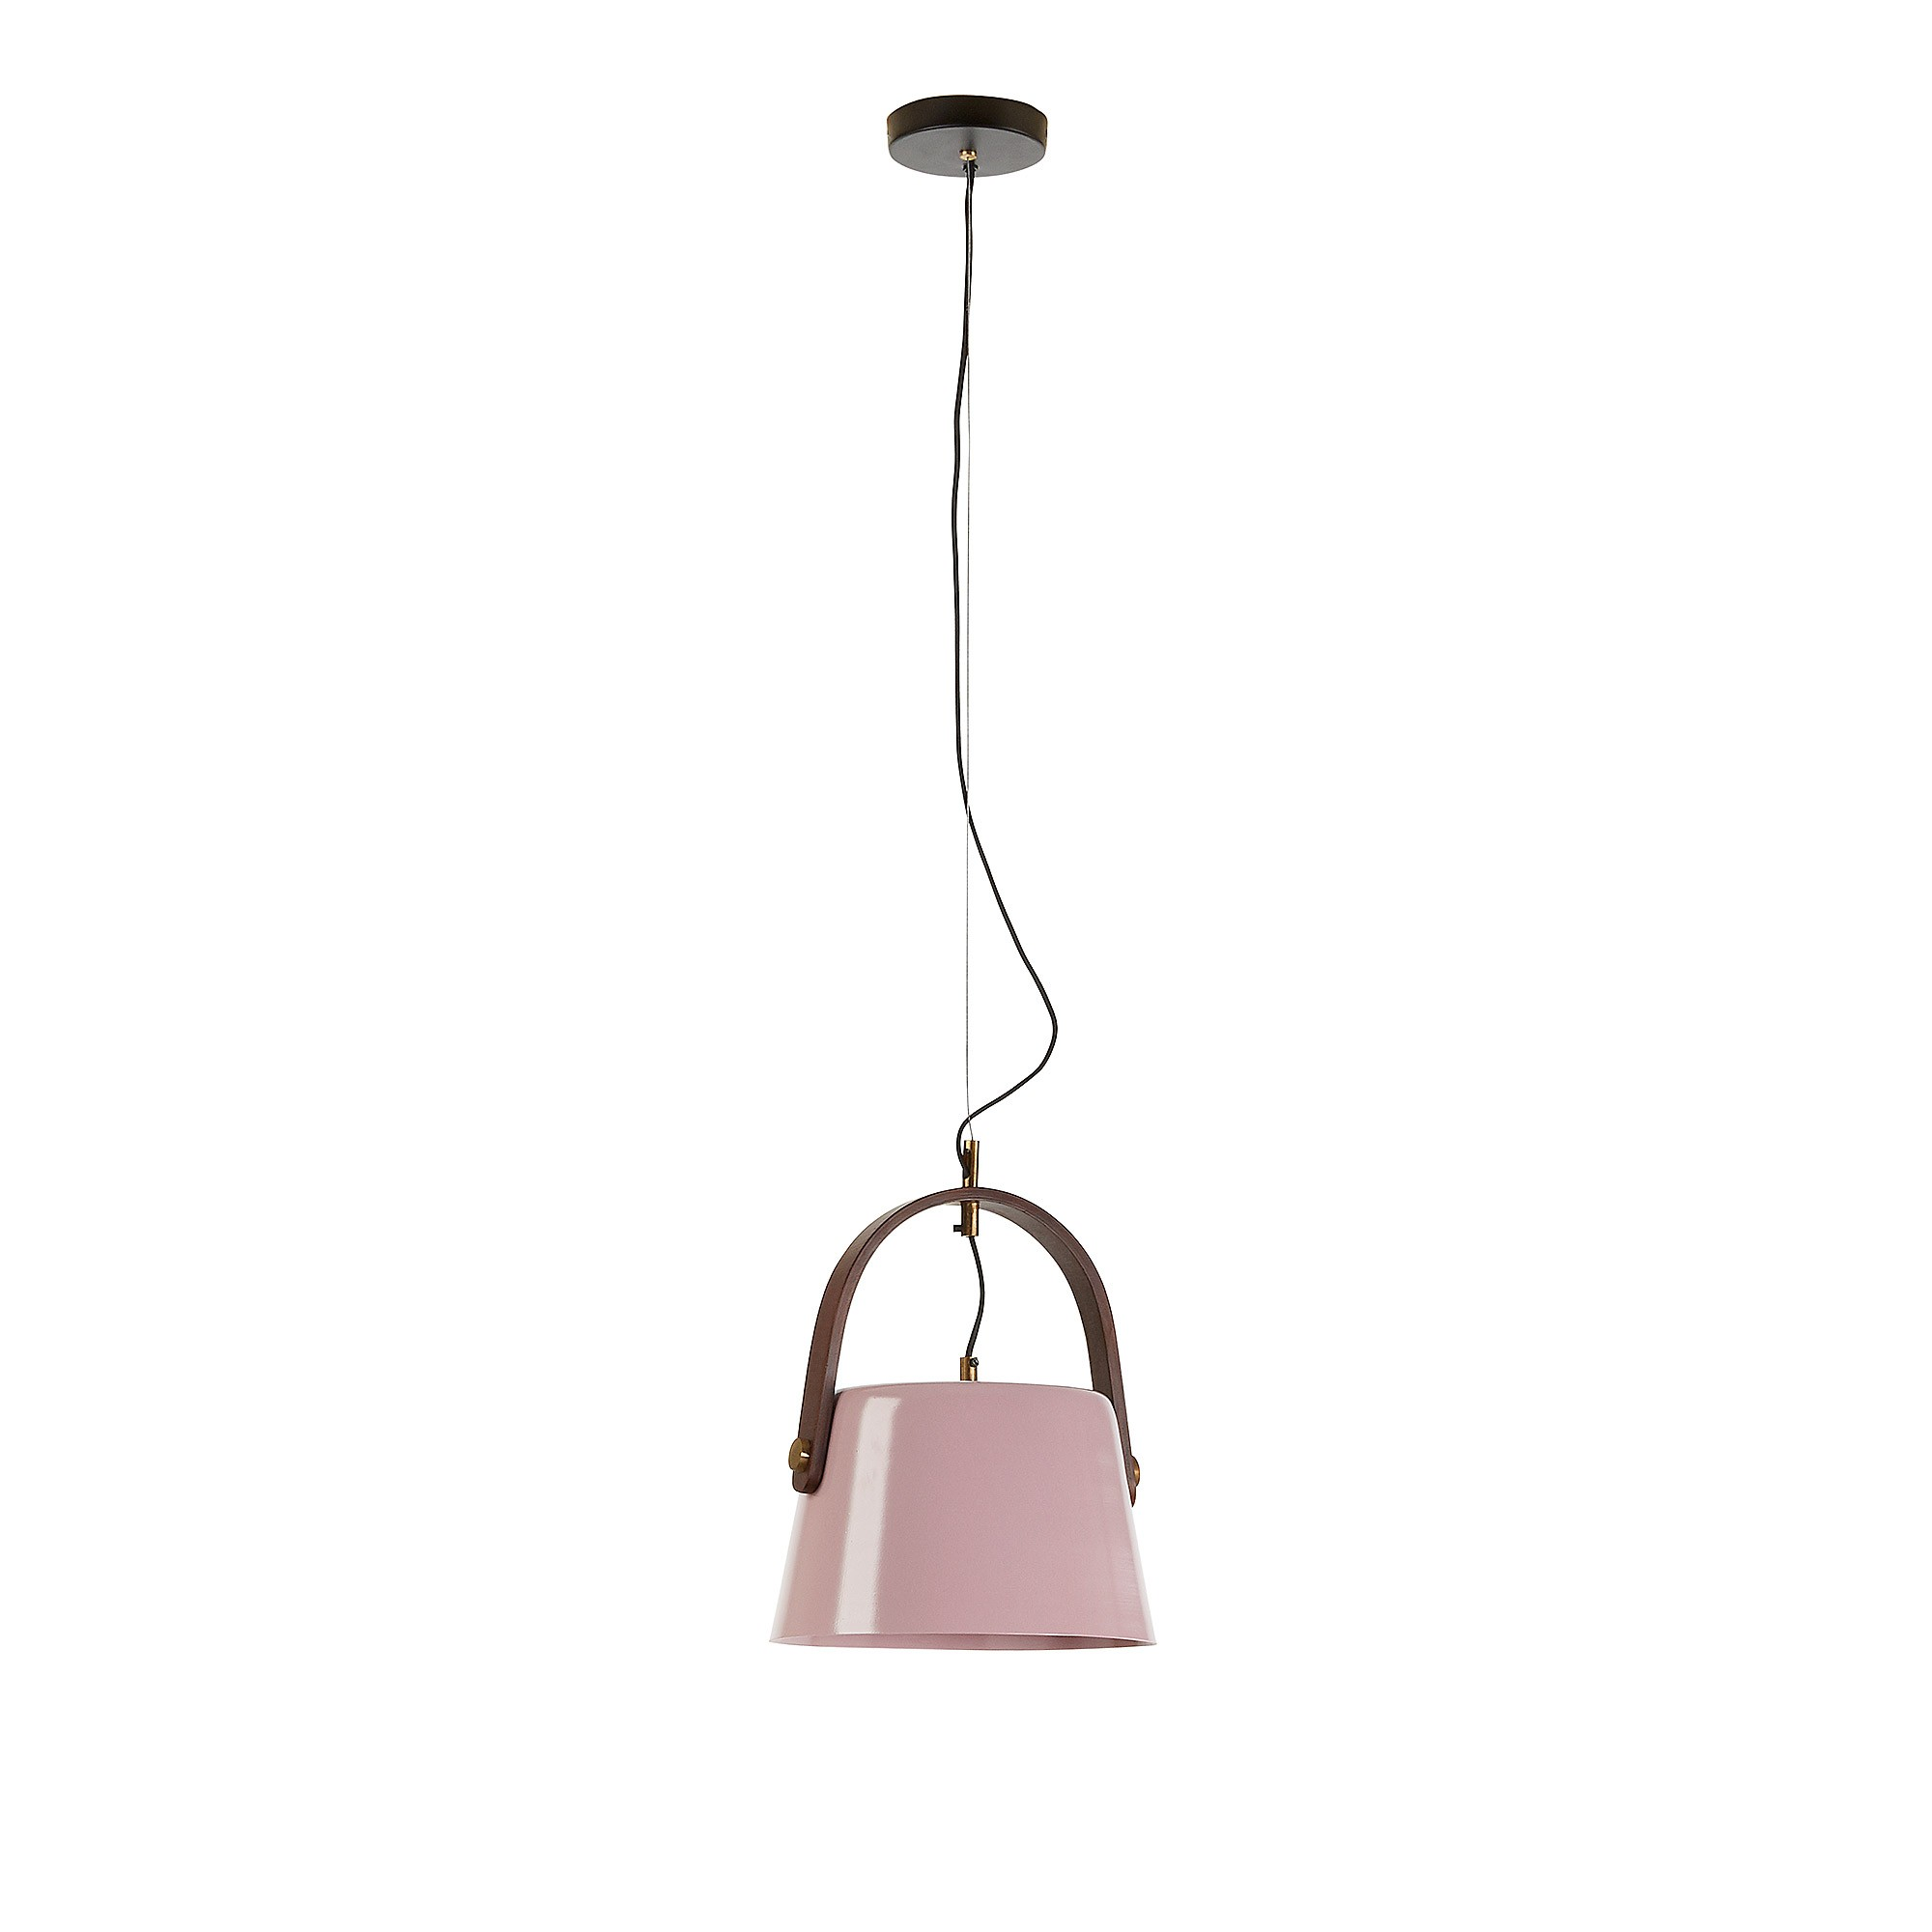 Zaka Steel Pendant Light, Wide Shade, Pink